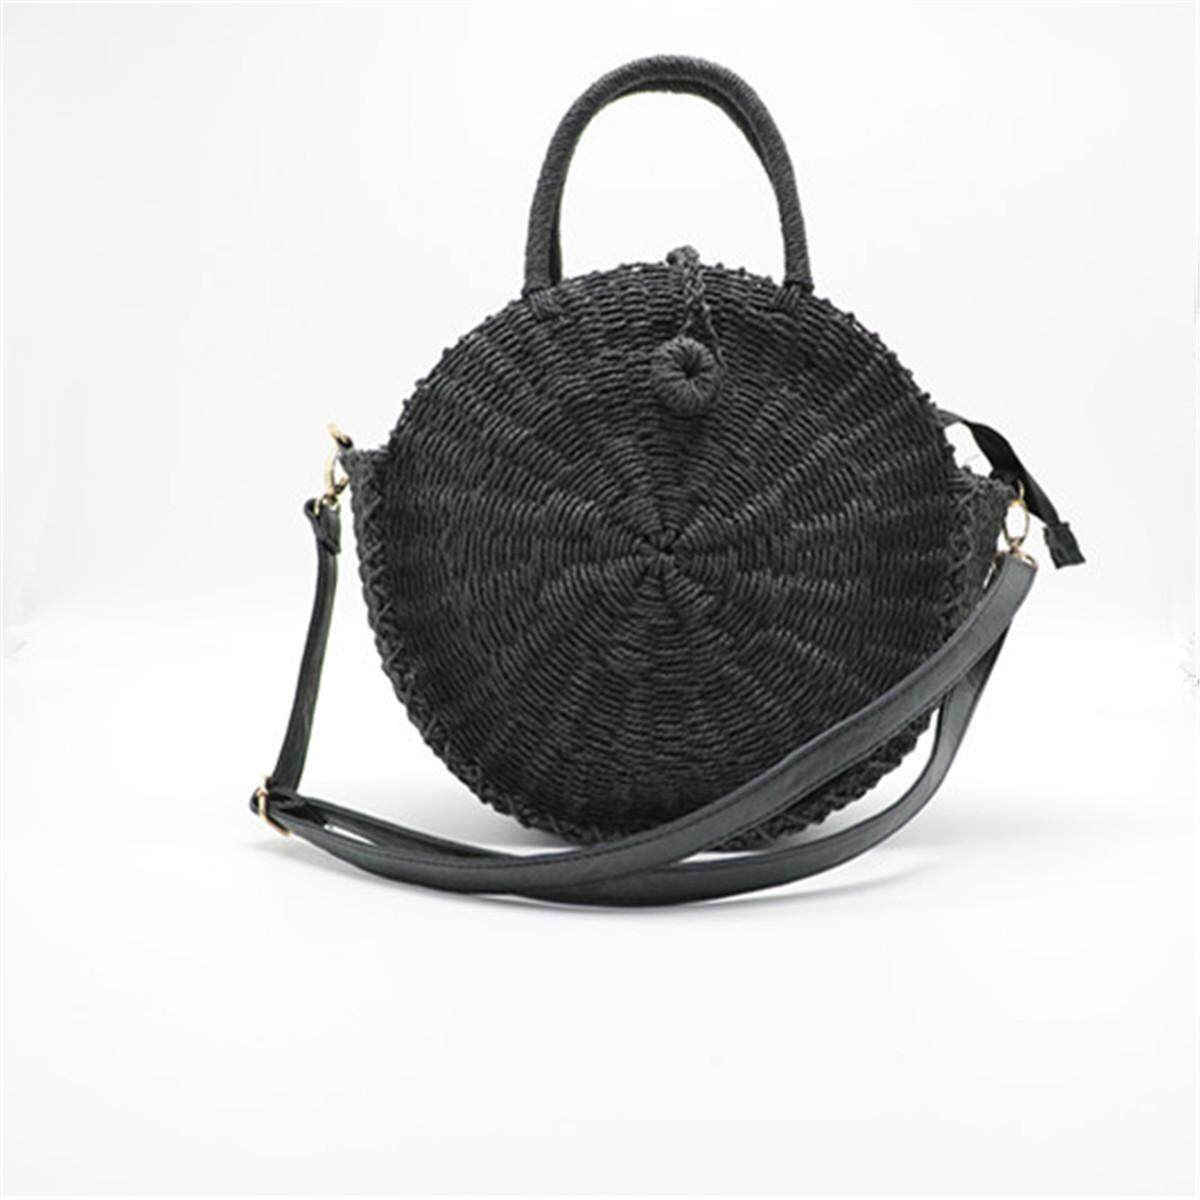 Where To Shop For 2018 Women Handmade Round Beach Shoulder Bag Bali Circle Straw Bags Summer Woven Black Intl